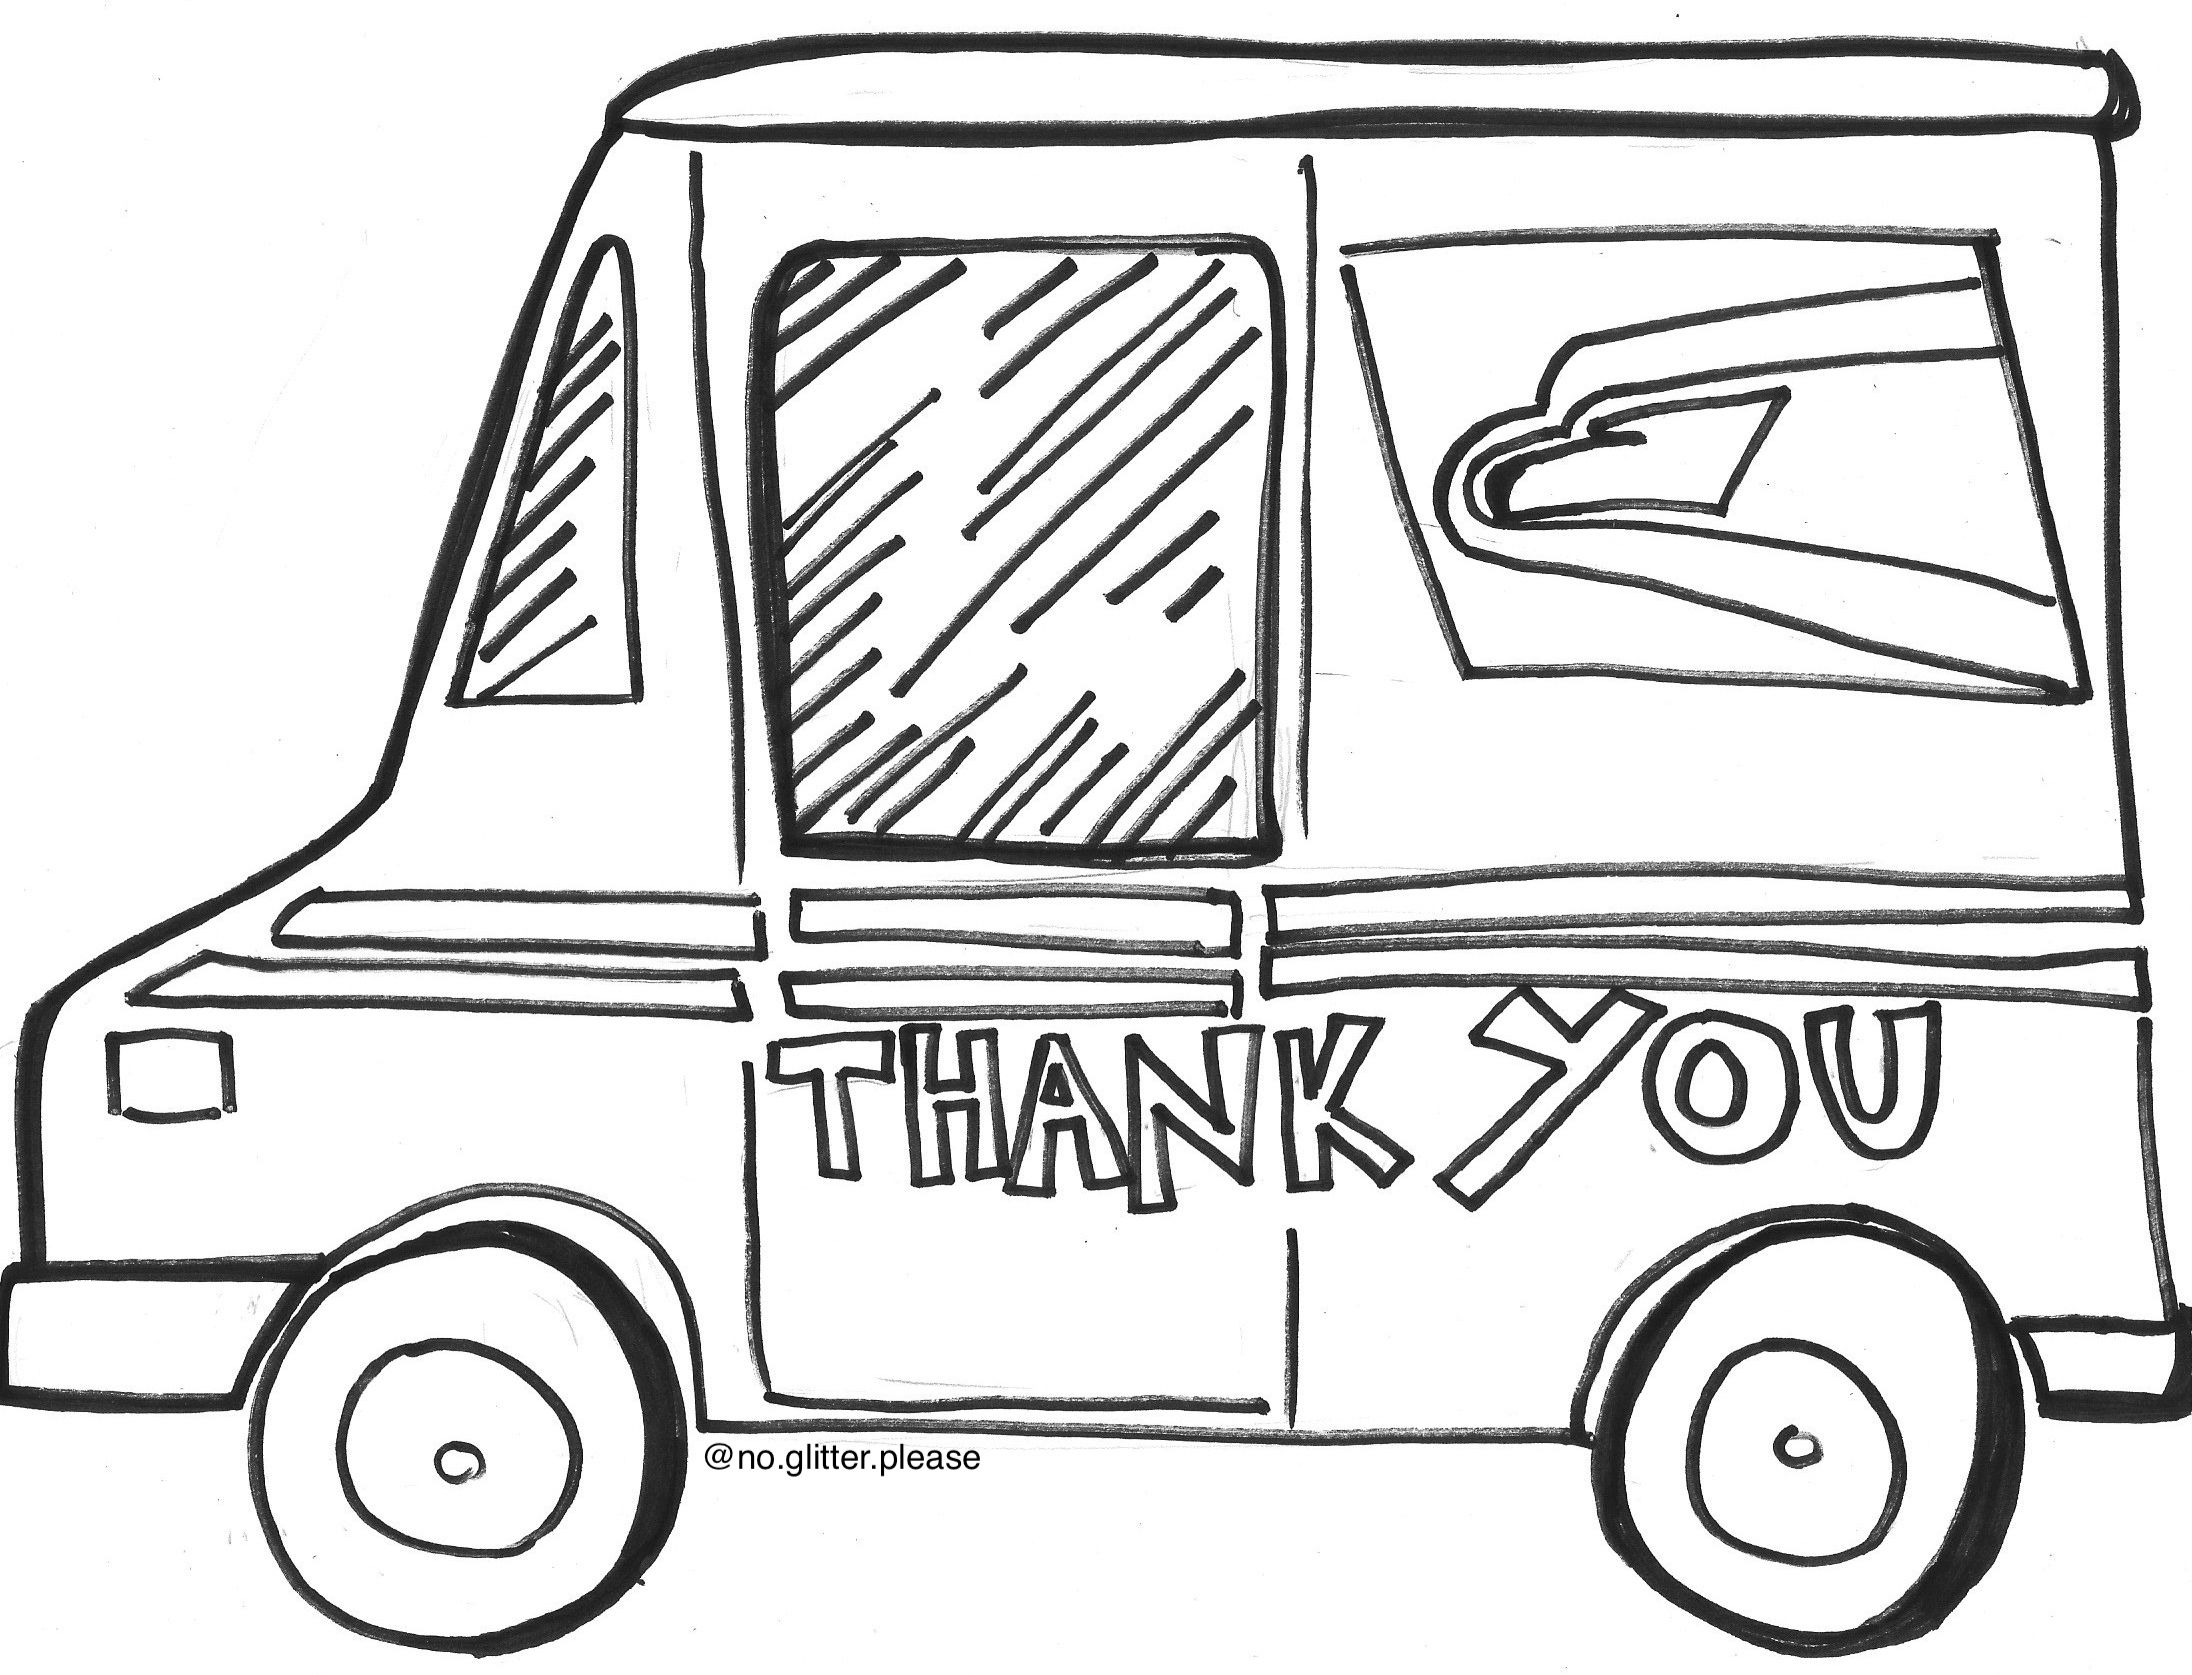 Thank You Mail Truck Truck Coloring Pages Mail Truck Projects For Kids